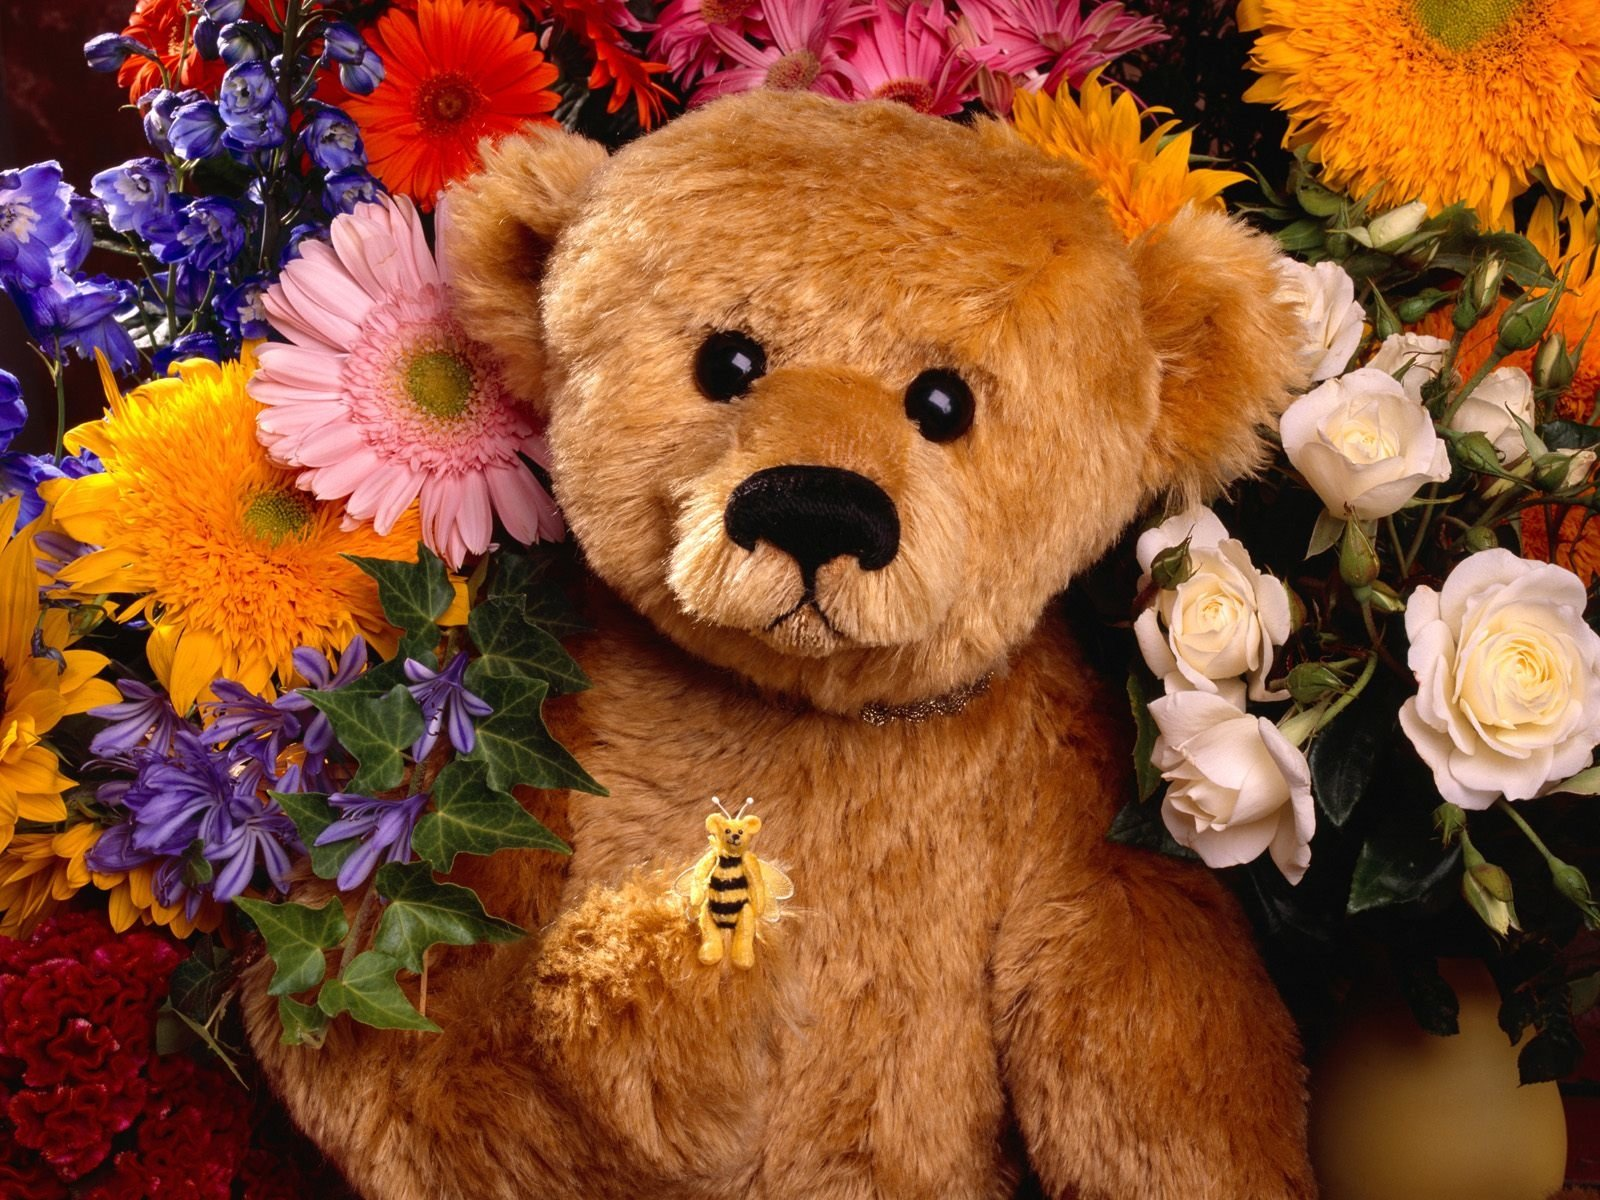 Man Made - Stuffed Animal  Teddy Bear Flower Toy Wallpaper